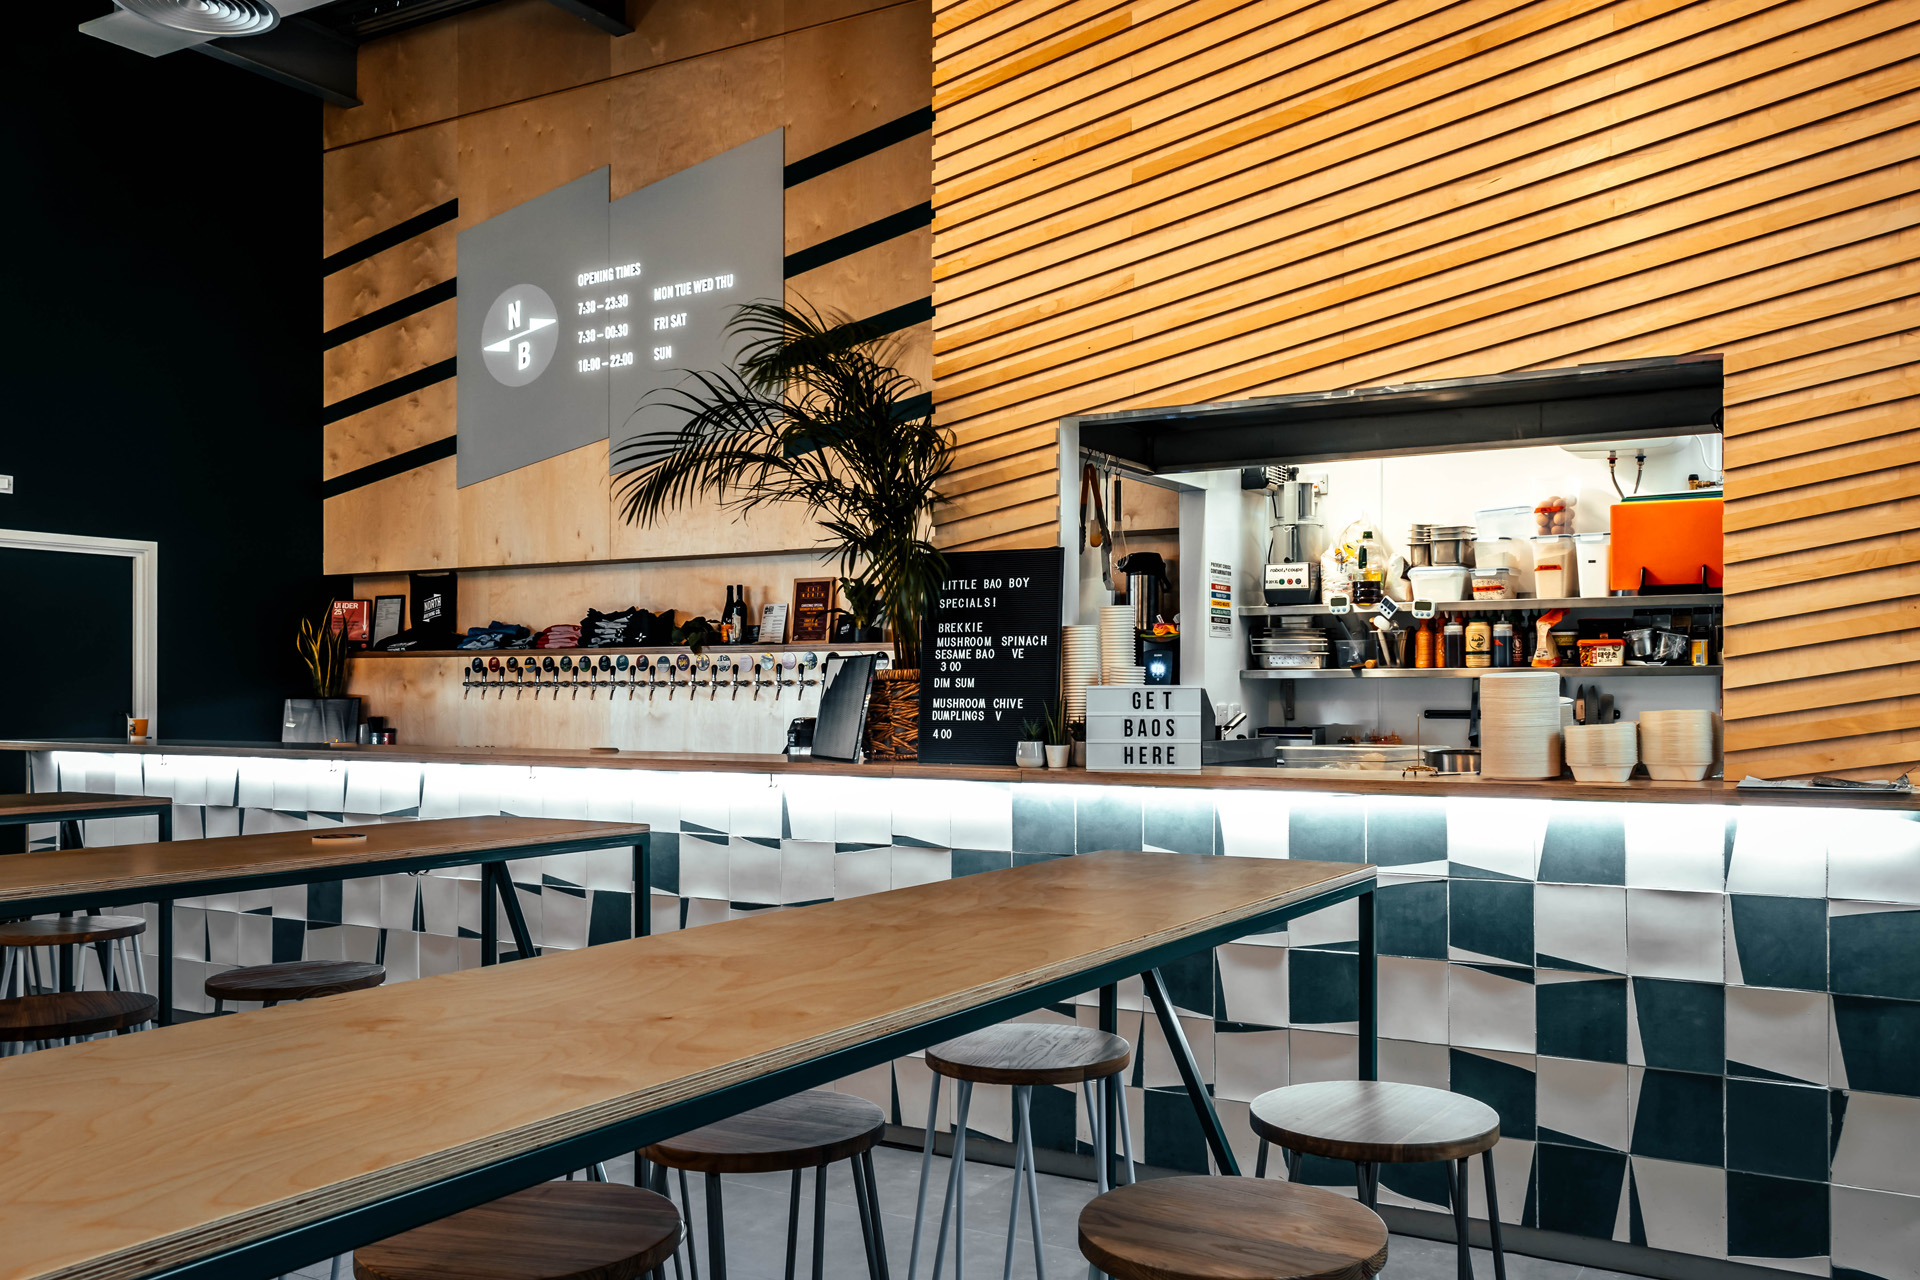 How to Make Your Bar or Restaurant More Instagrammable